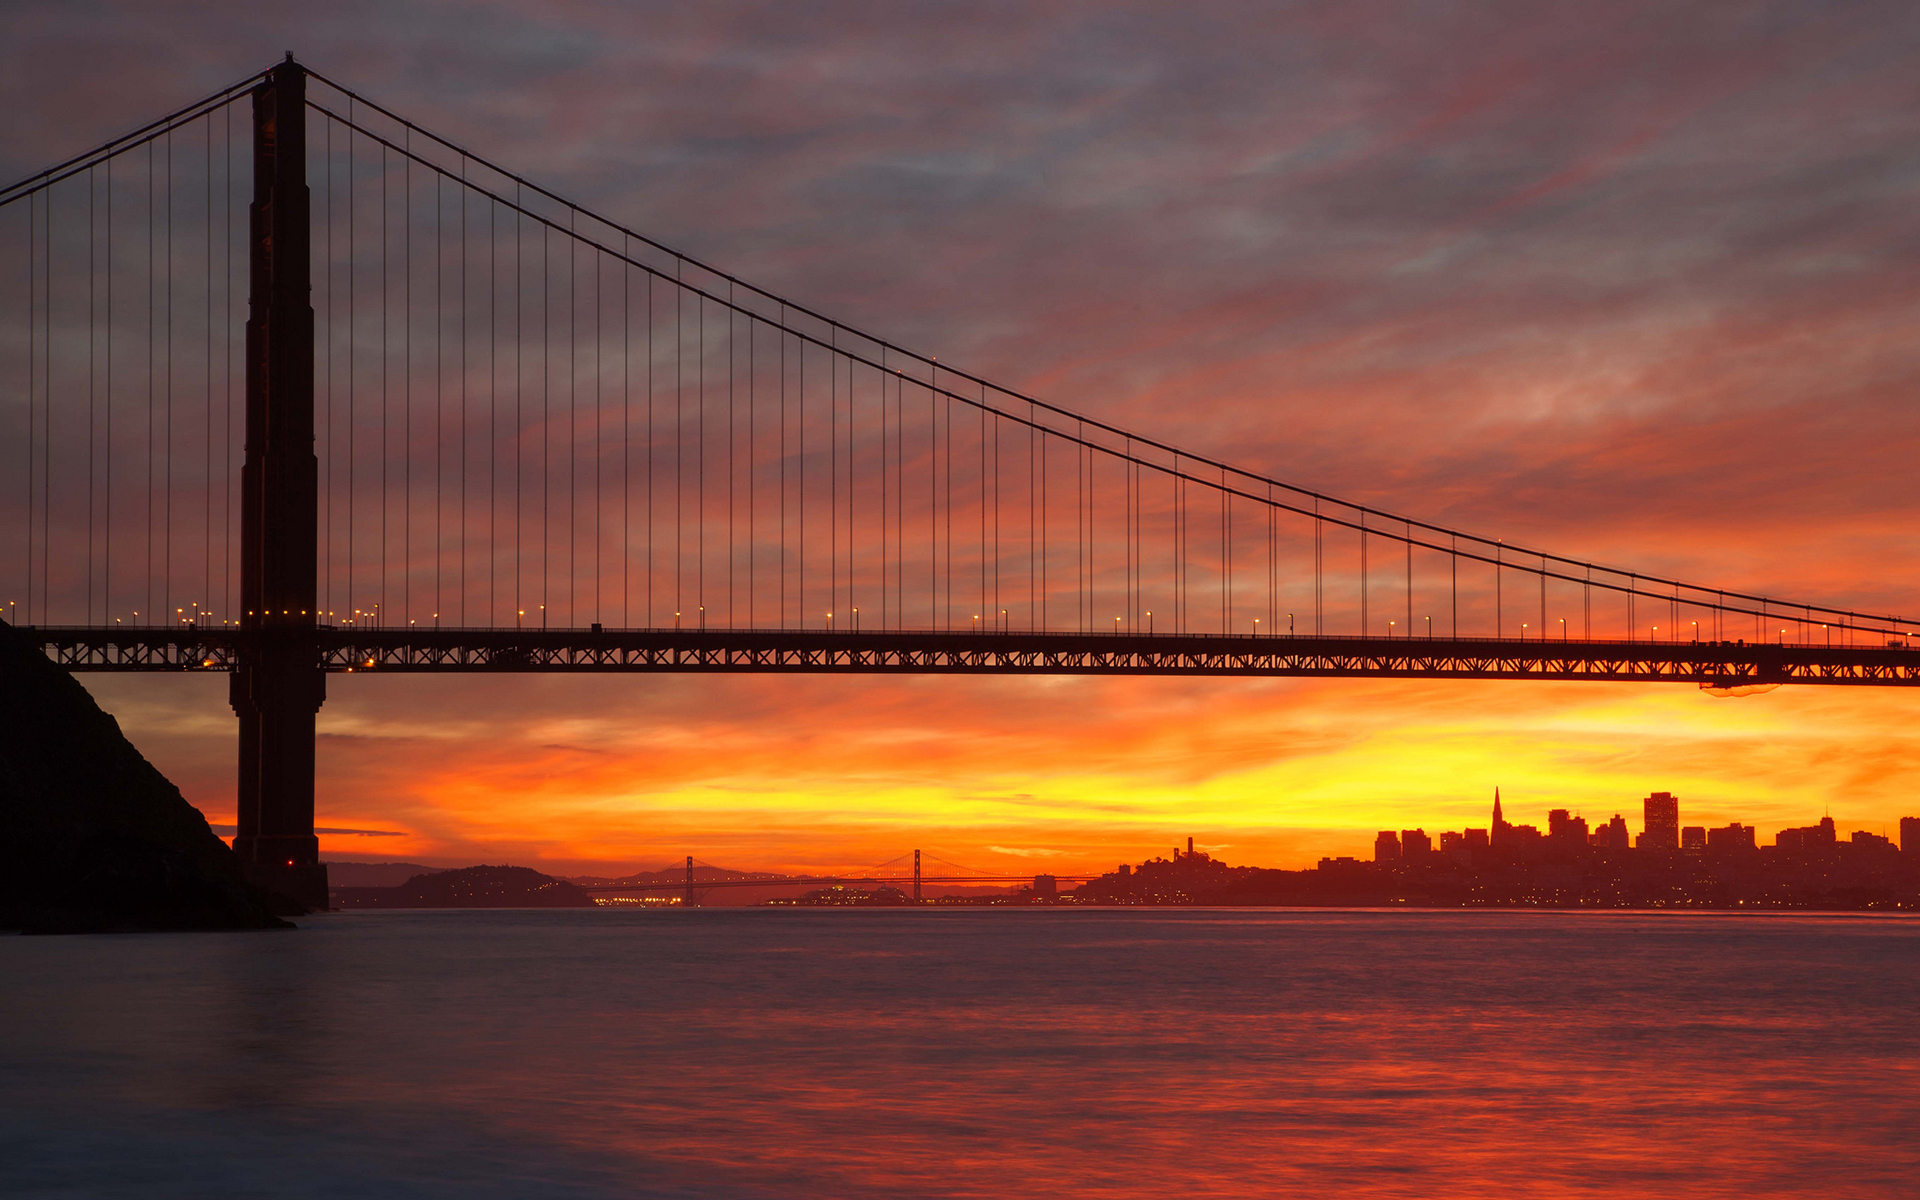 sunrise pictures golden gate - HD1920×1200